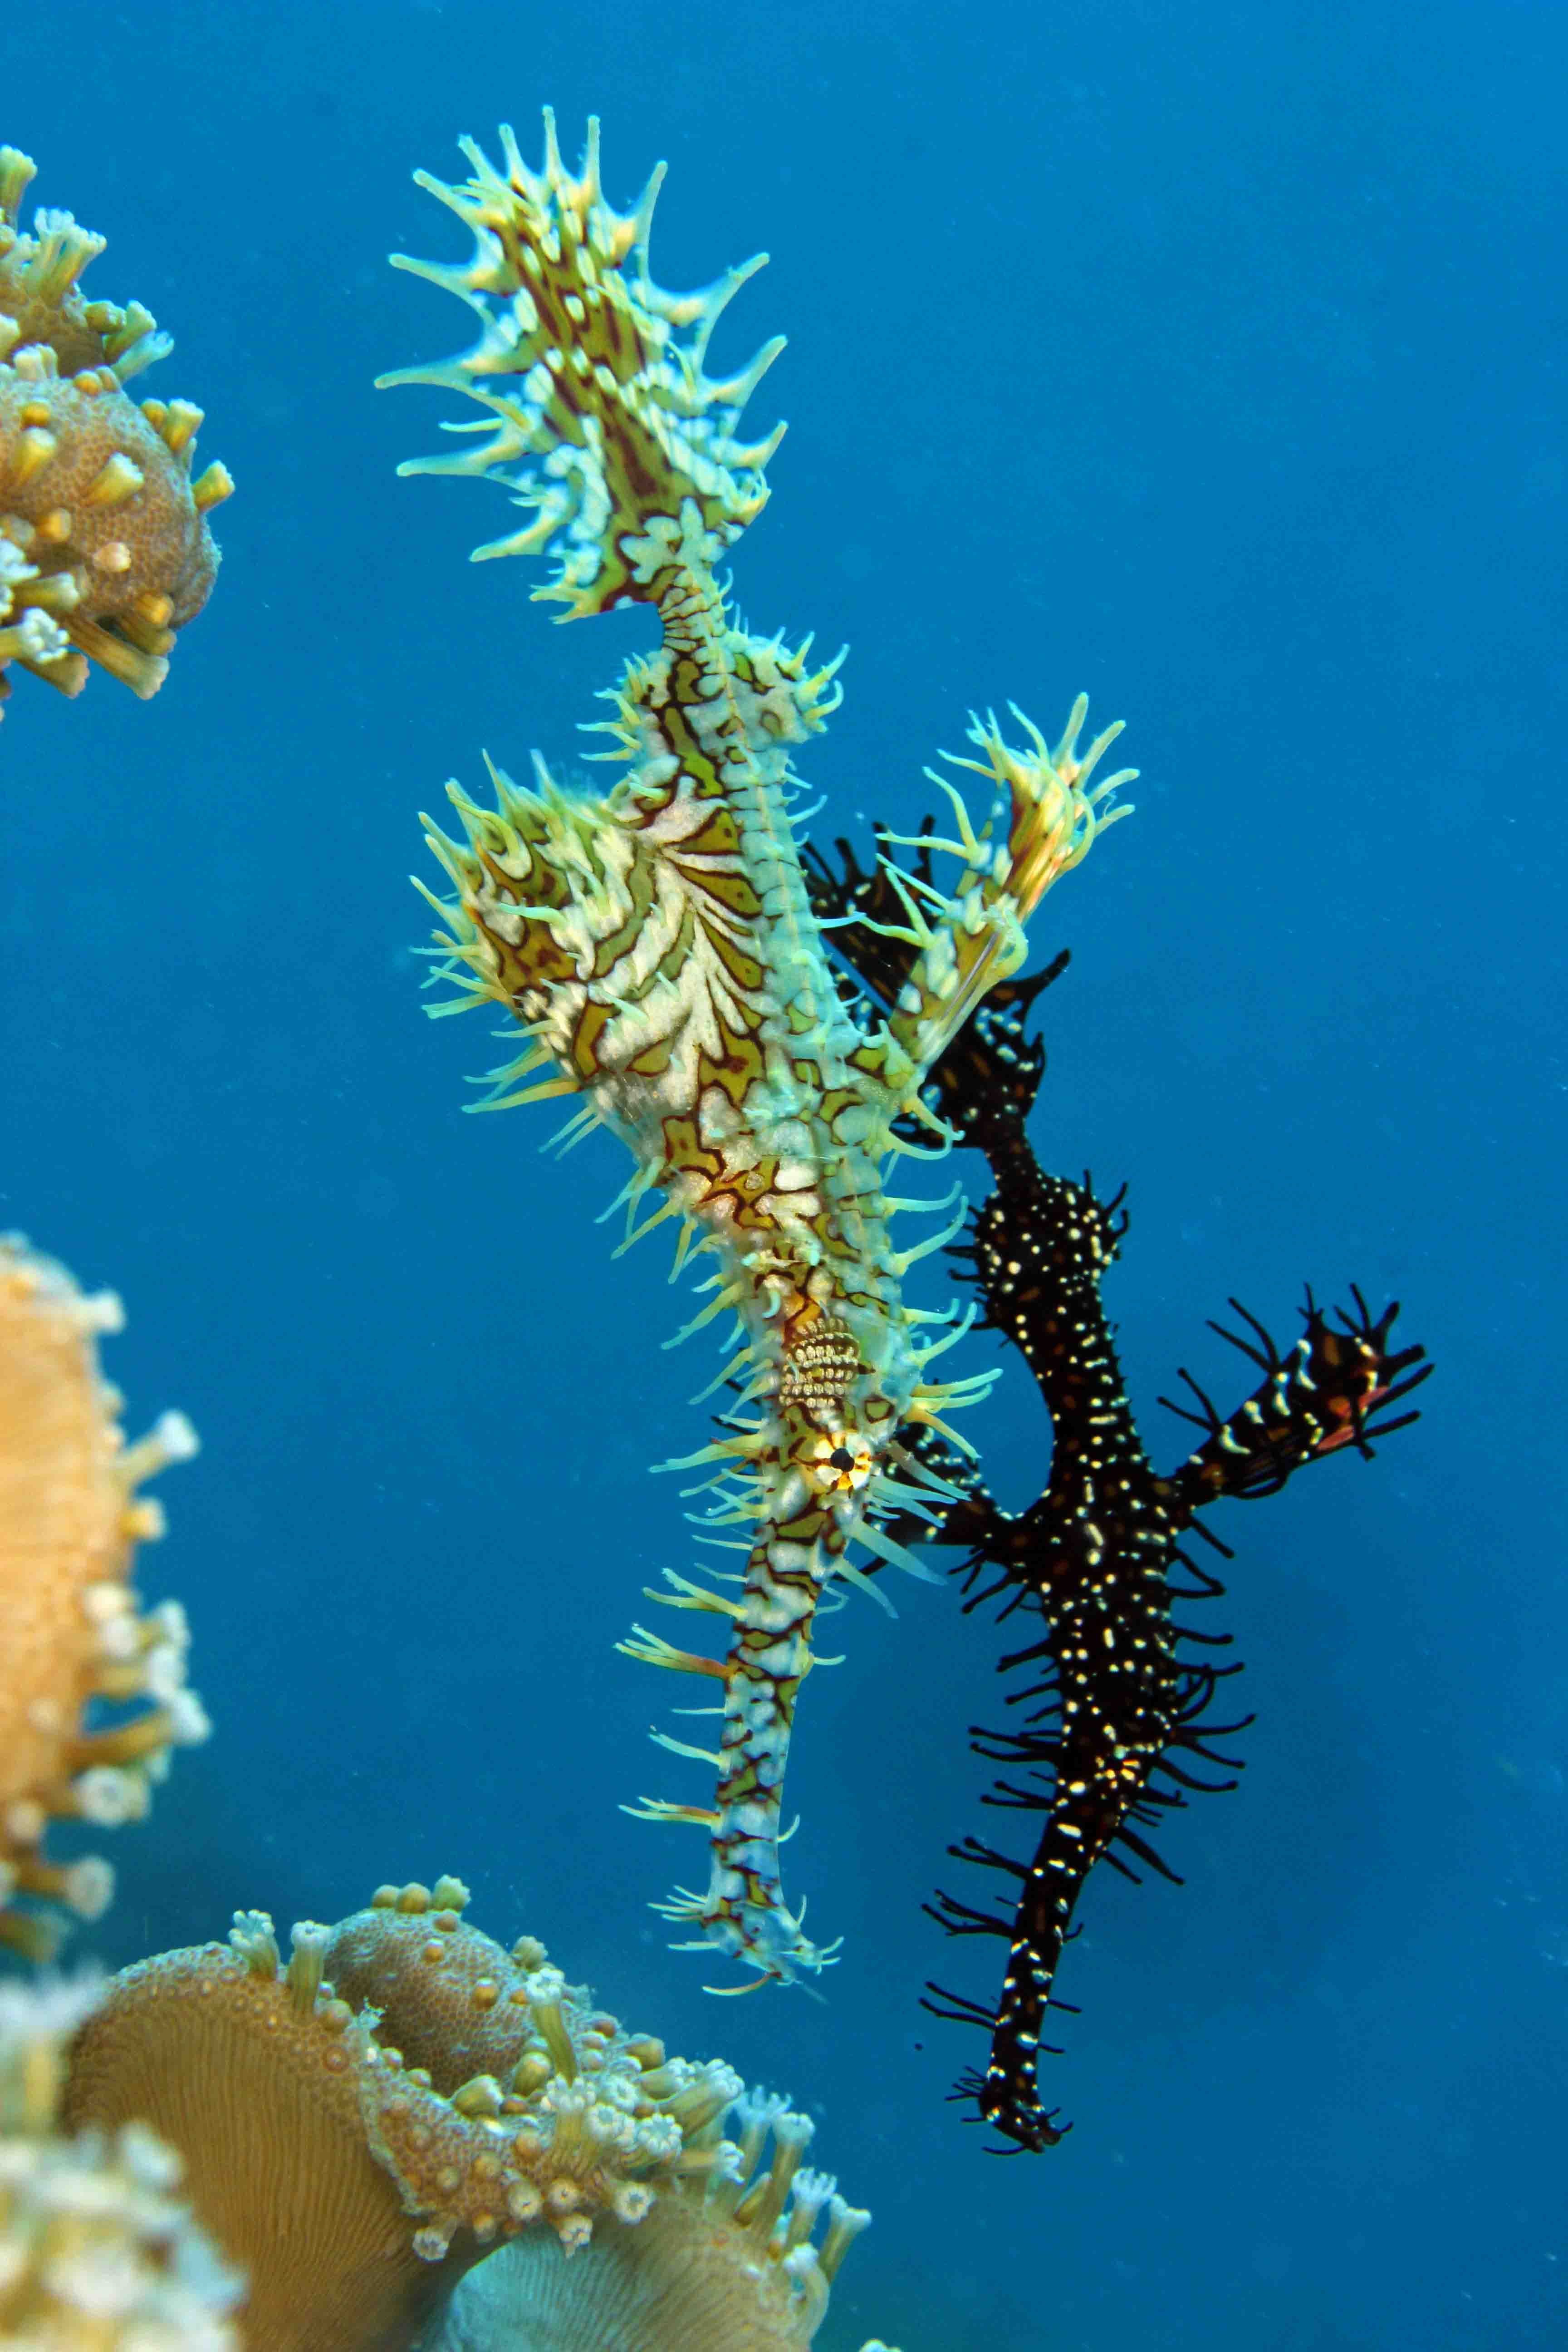 Ornate Gohst Pipefish